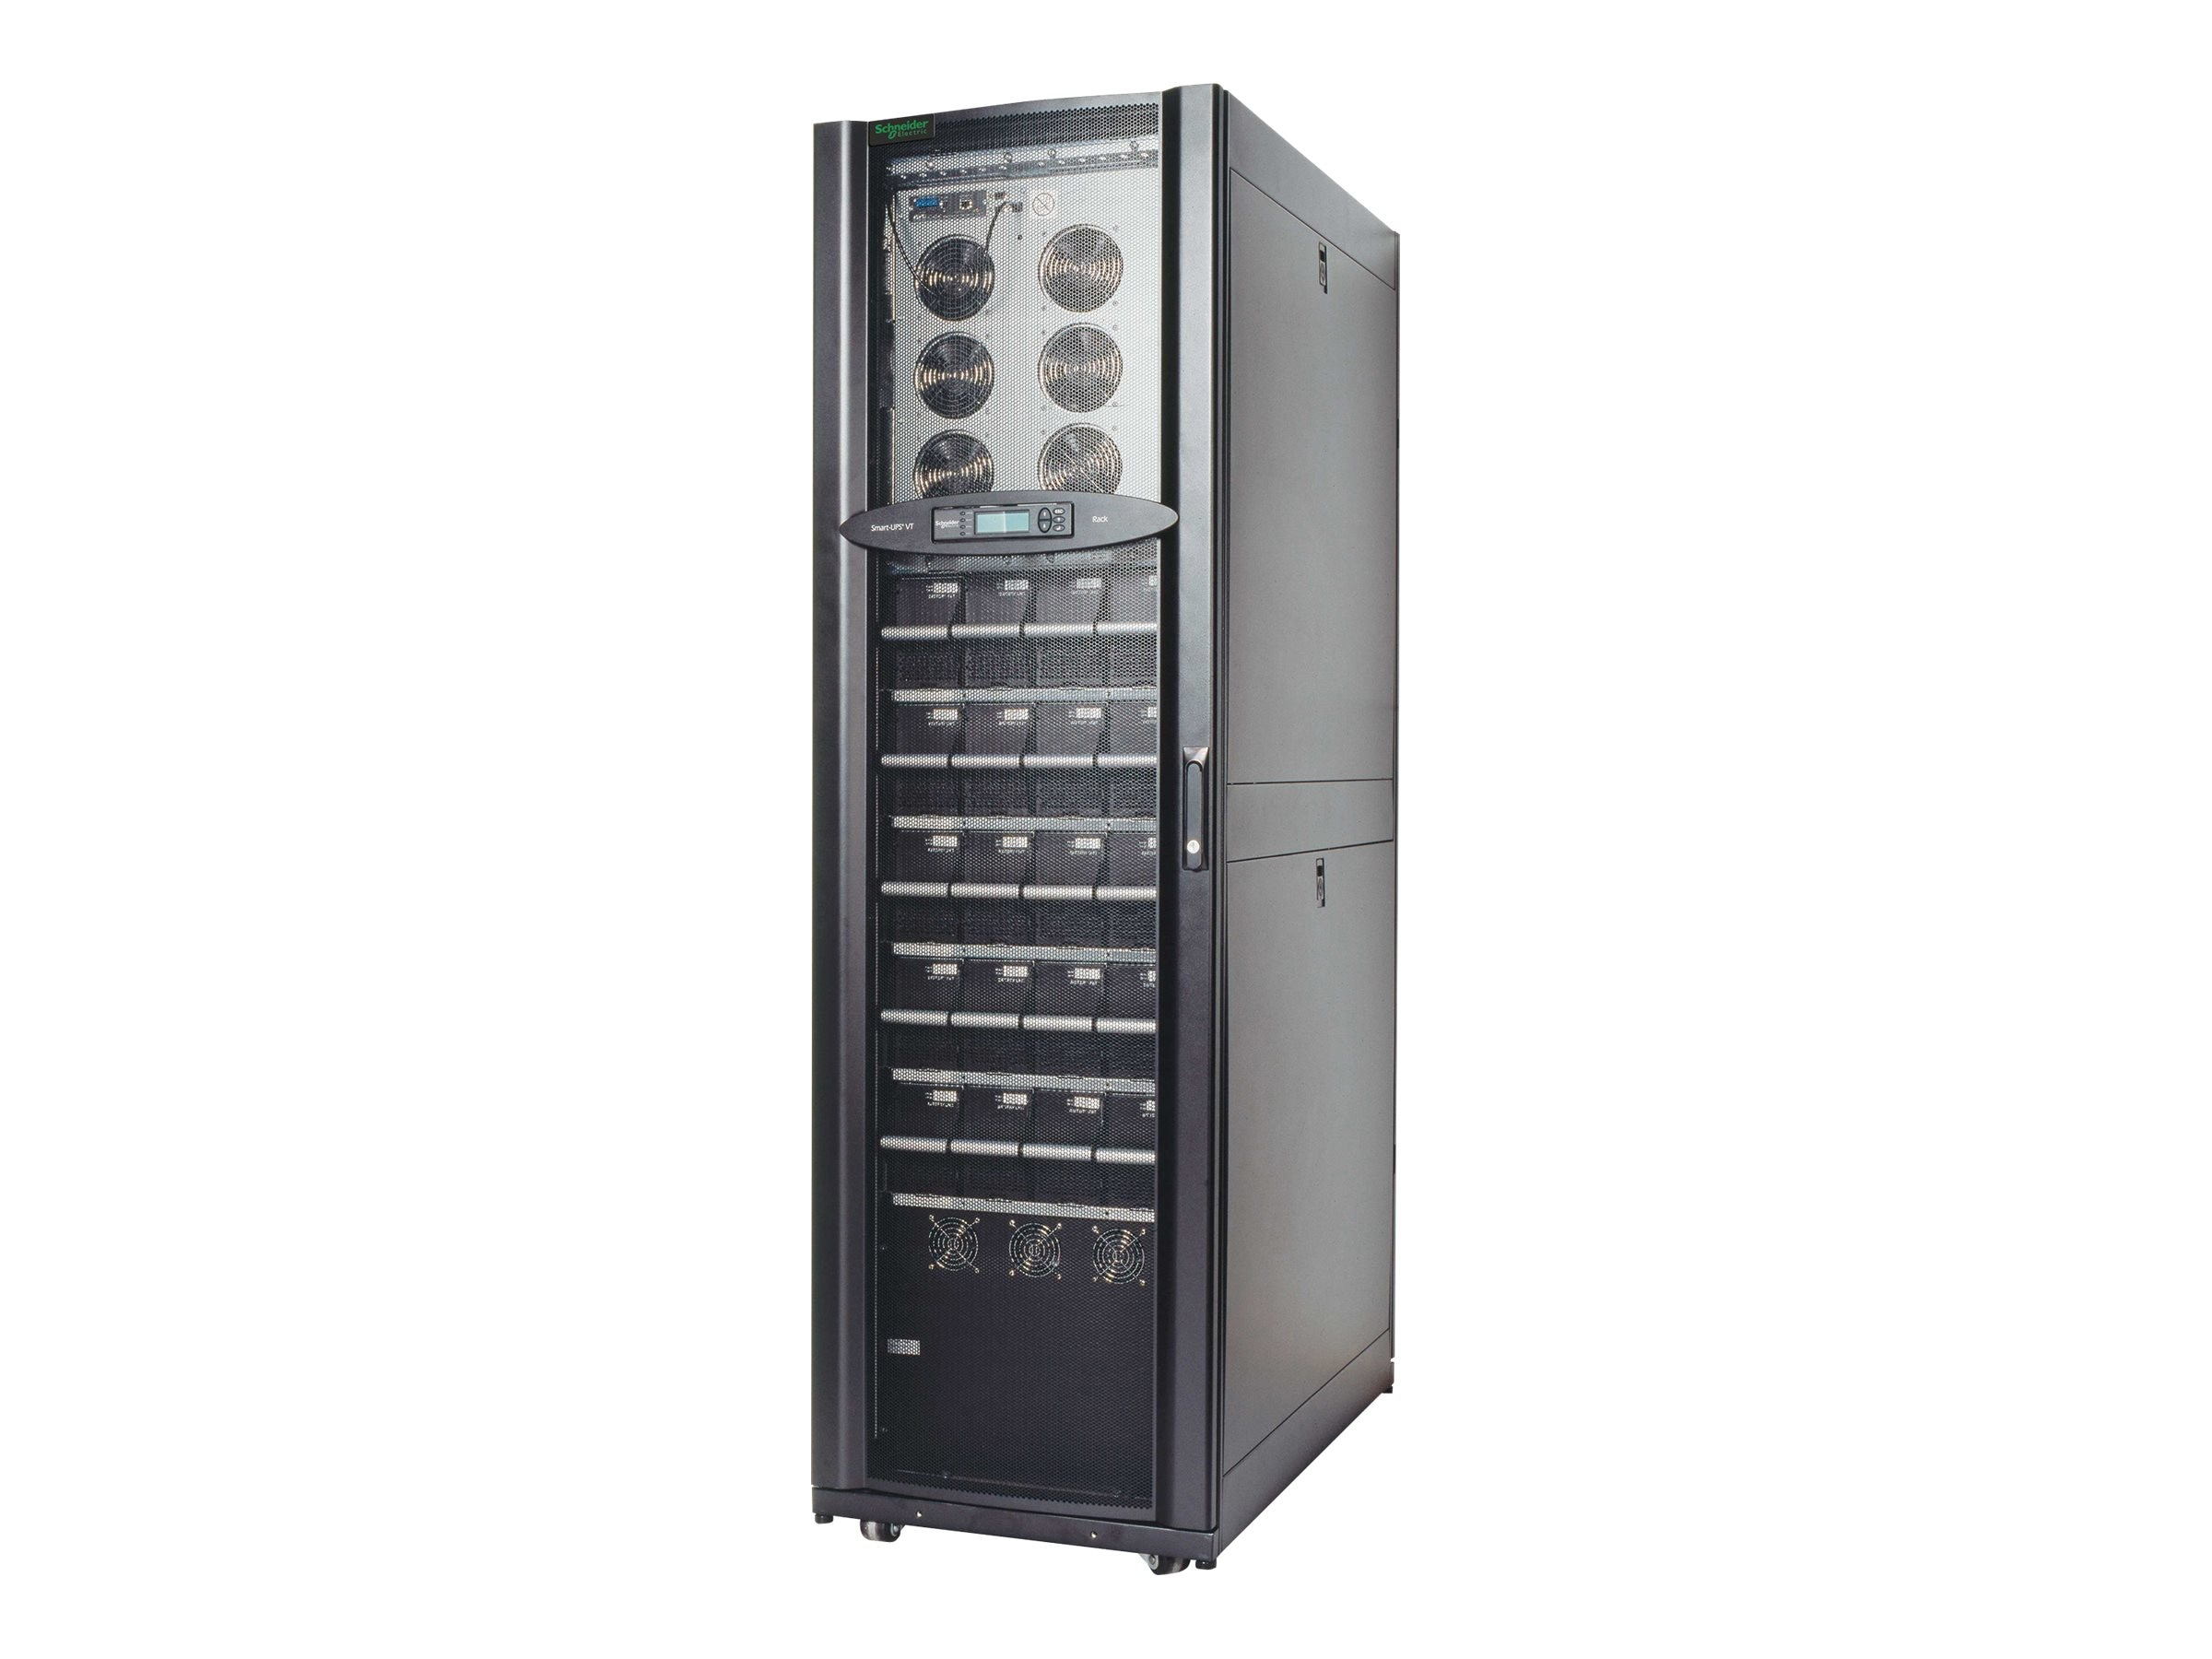 APC Smart-UPS VT 20kVA RM, 480V Input, 208V Output, (4) Battery Modules Expandable to (5), PDU, Startup, SUVTR20KG4B5S, 9694109, Battery Backup/UPS